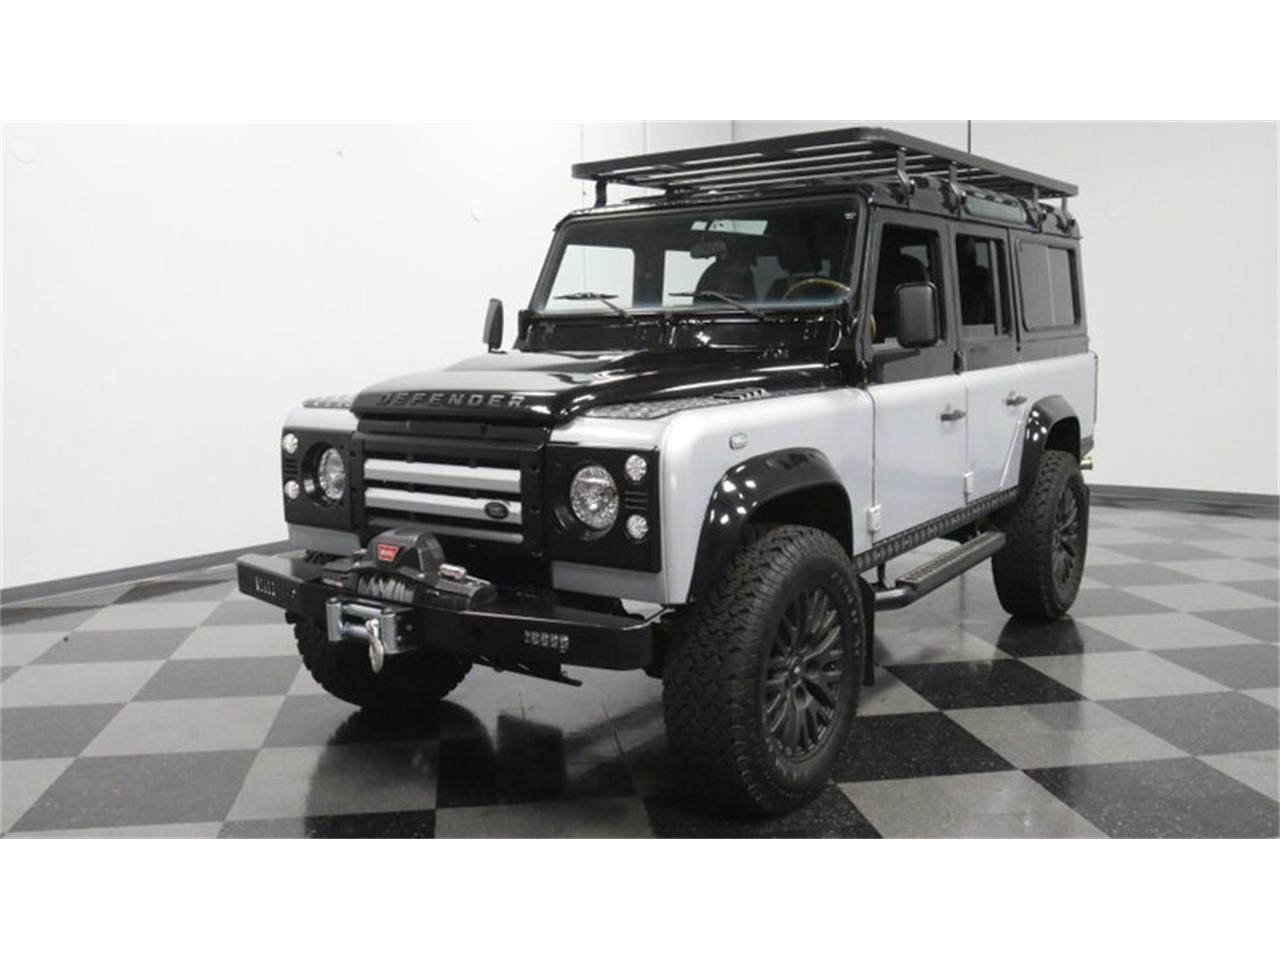 For Sale: 1988 Land Rover Defender in Lithia Springs, Georgia